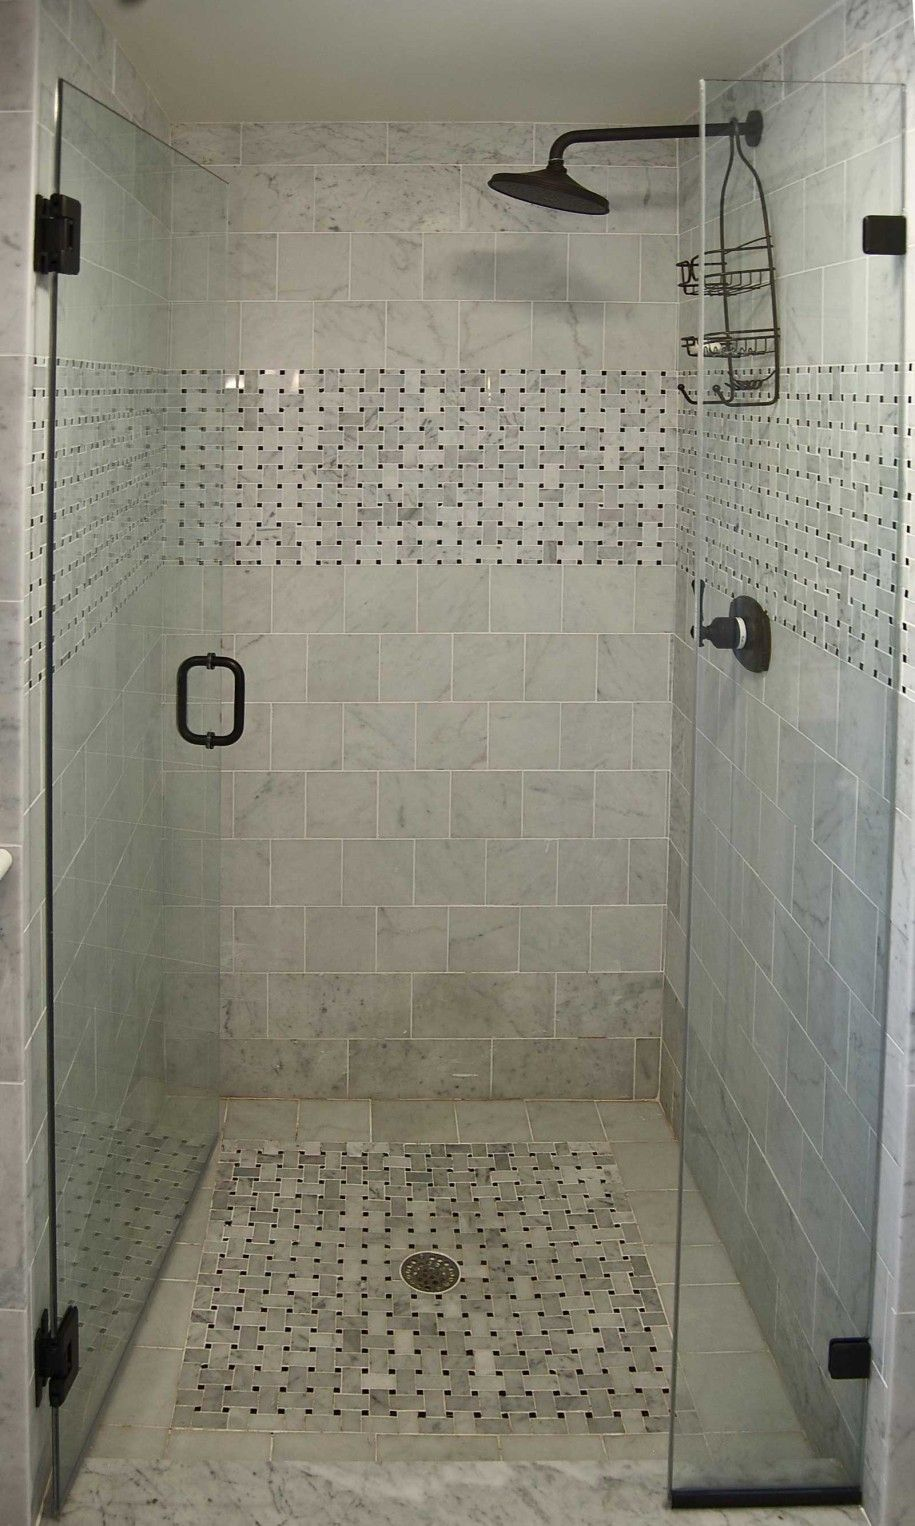 how to determine the bathroom shower ideas shower stall ideas for bathrooms with glass door - Design For Small Bathroom With Shower